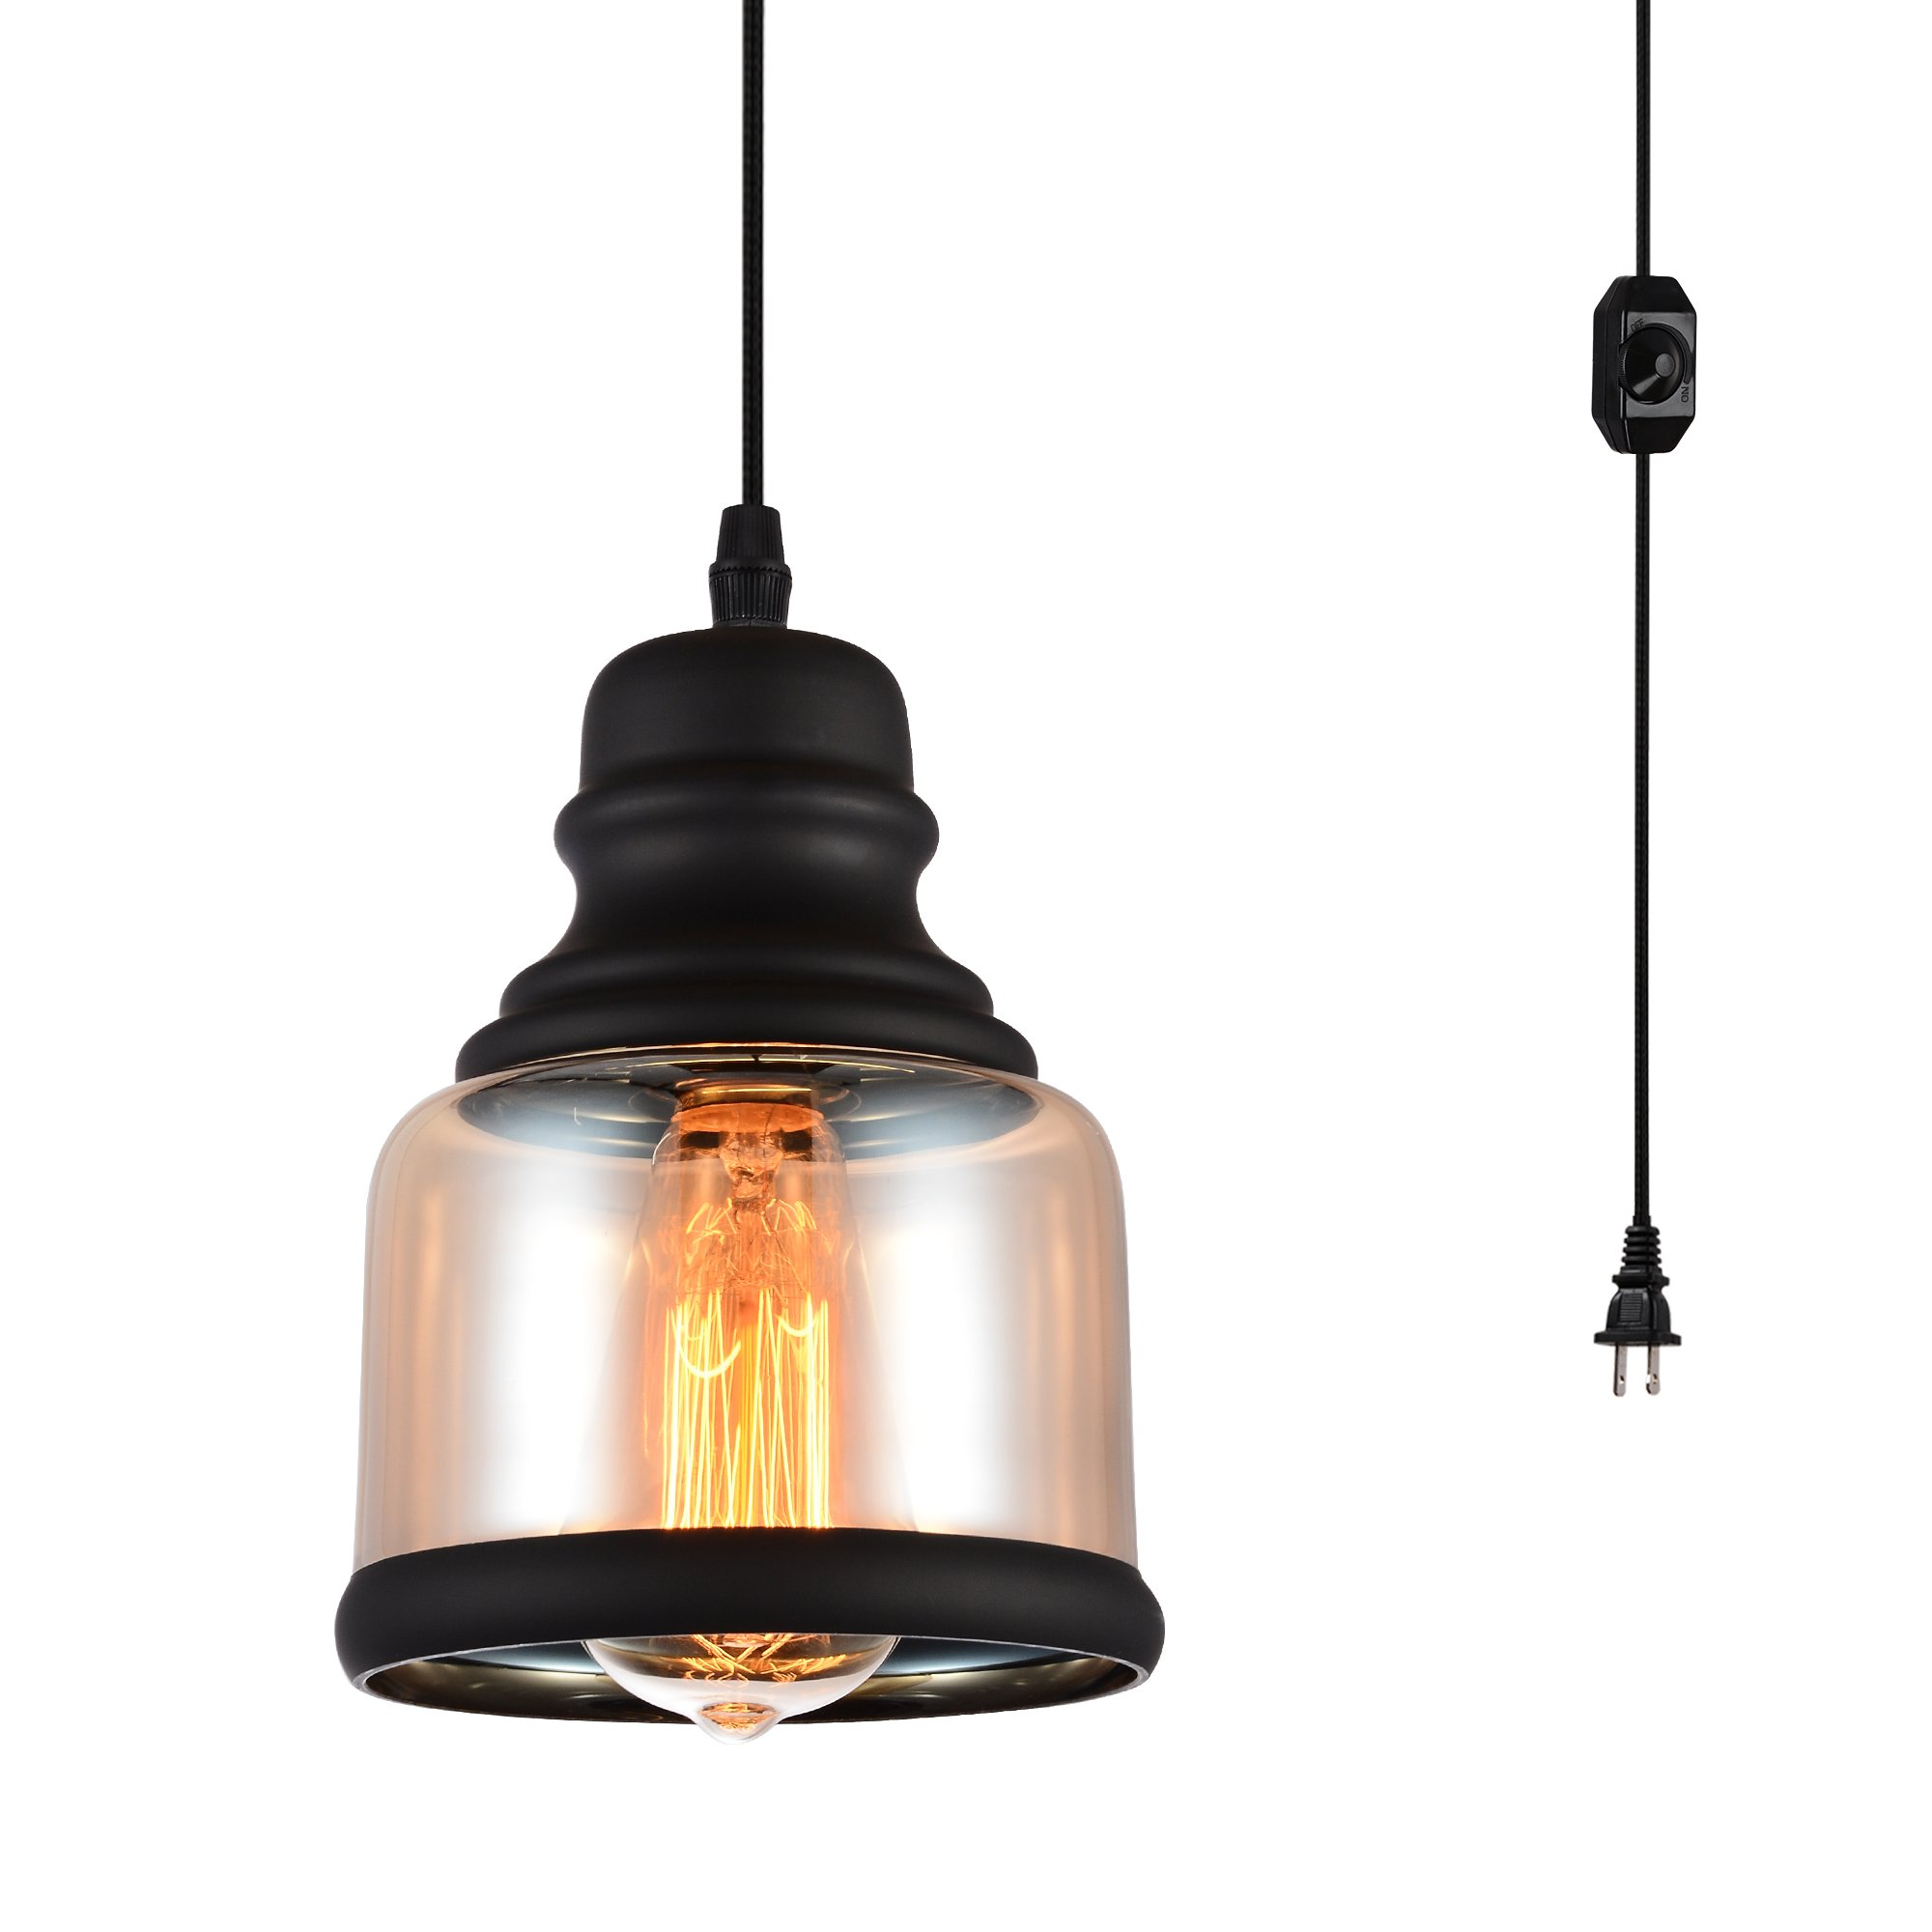 HMVPL Glass Hanging Lights with Plug in Cord and On/Off Dimmer Switch, Updated Industrial Edison Vintage Swag Pendant Lamps for Kitchen Island or Dining Room -Black Jar by HMVPL (Image #1)